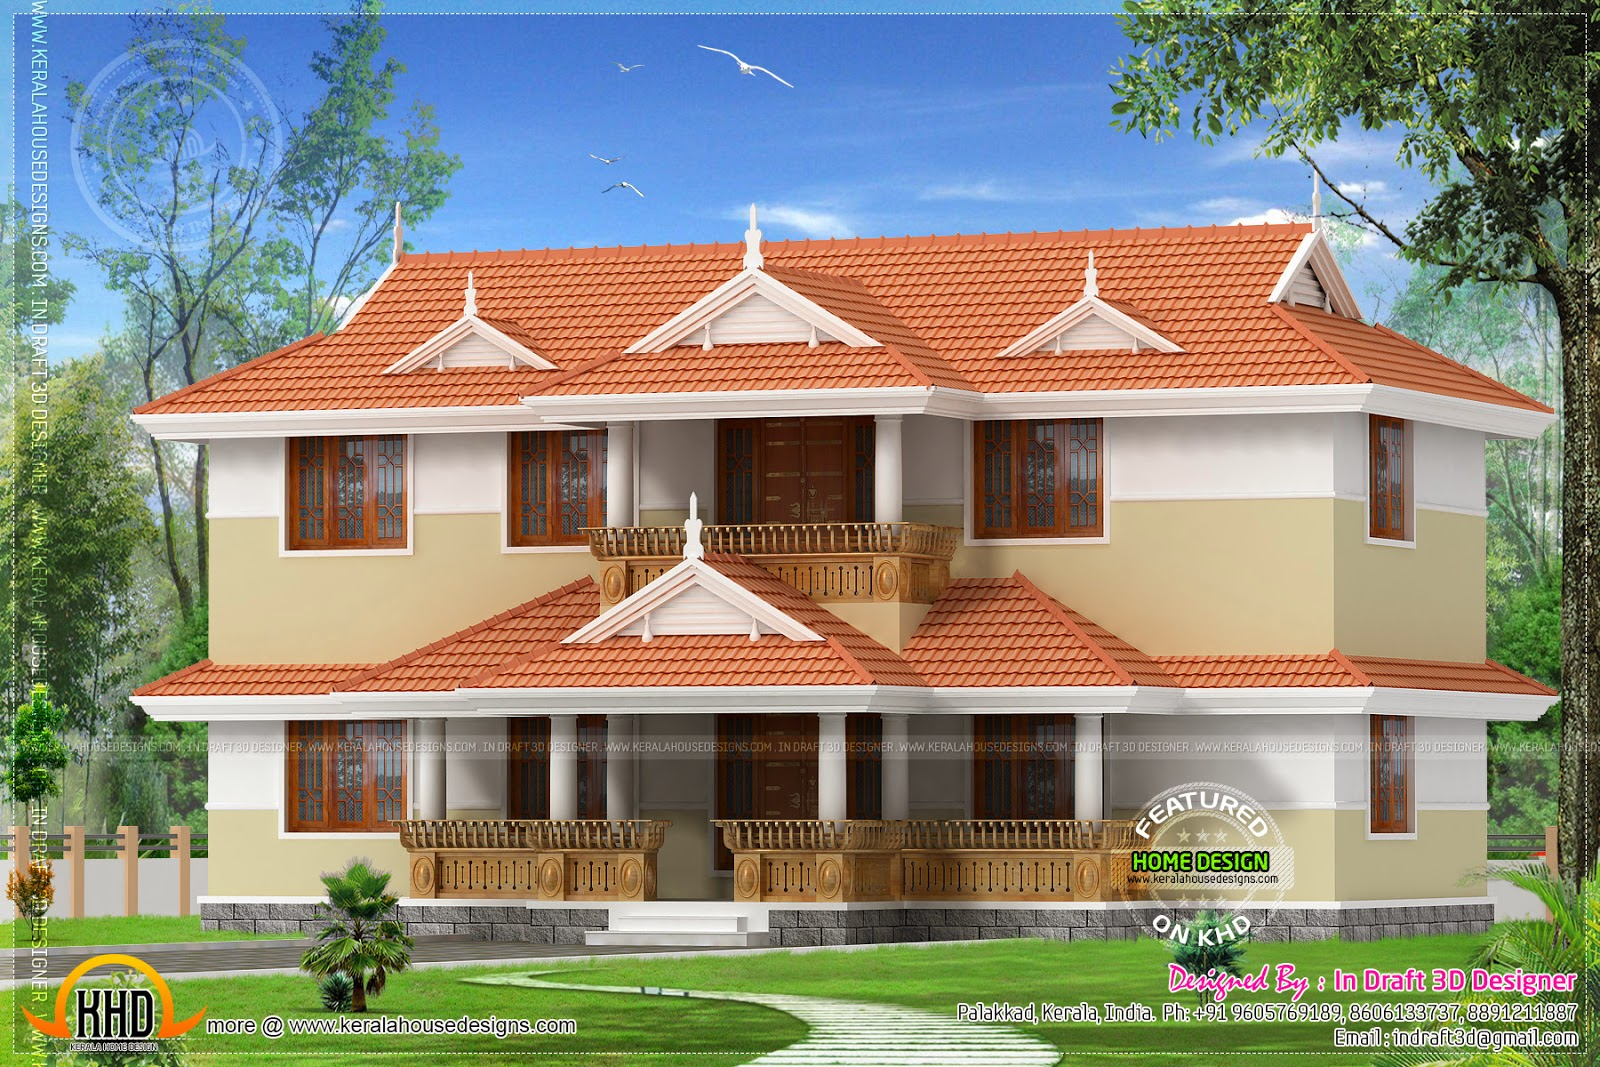 4 bed room traditional kerala home with courtyard kerala for Traditional house plans kerala style